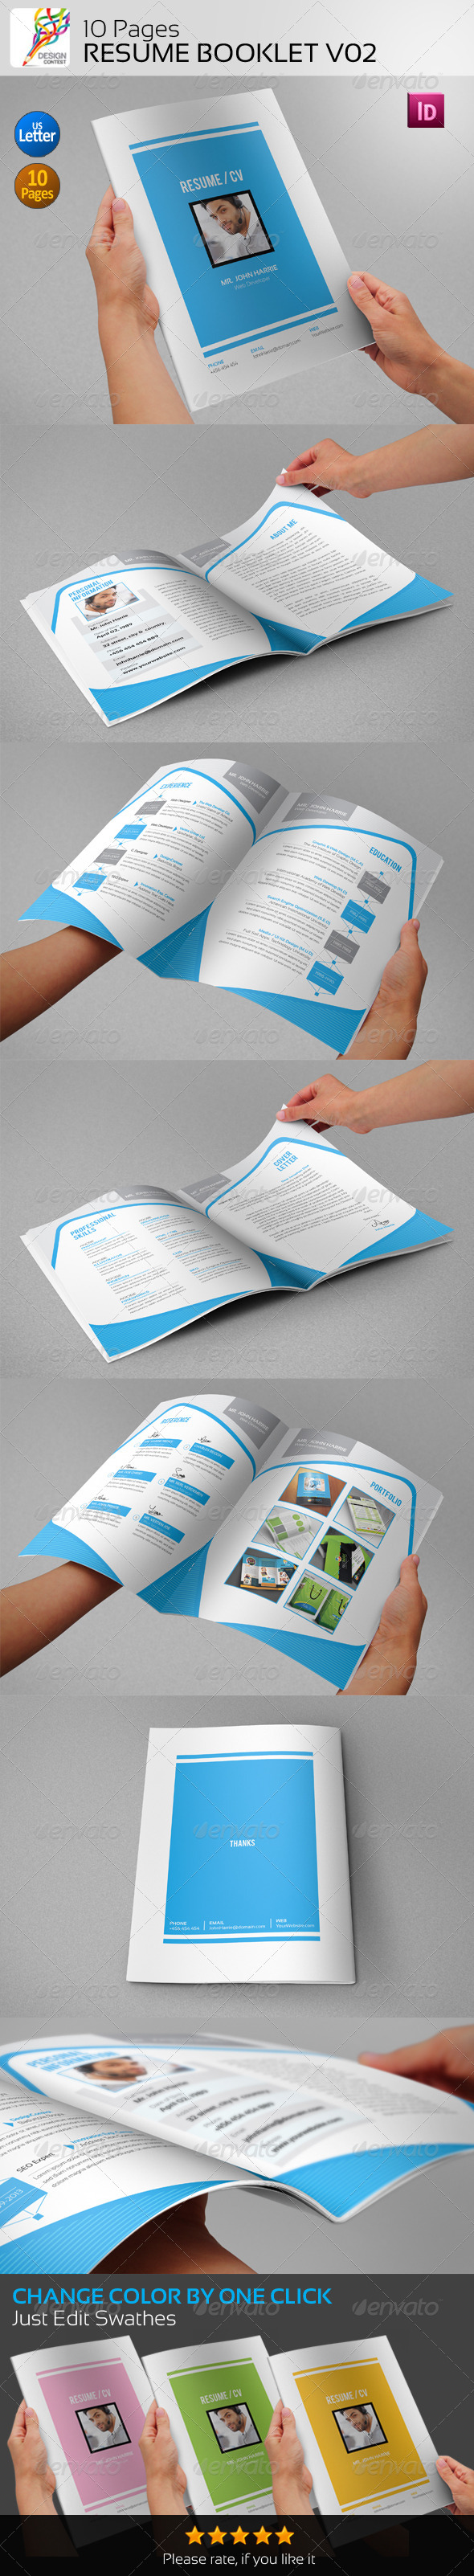 10 Pages Resume Booklet V02